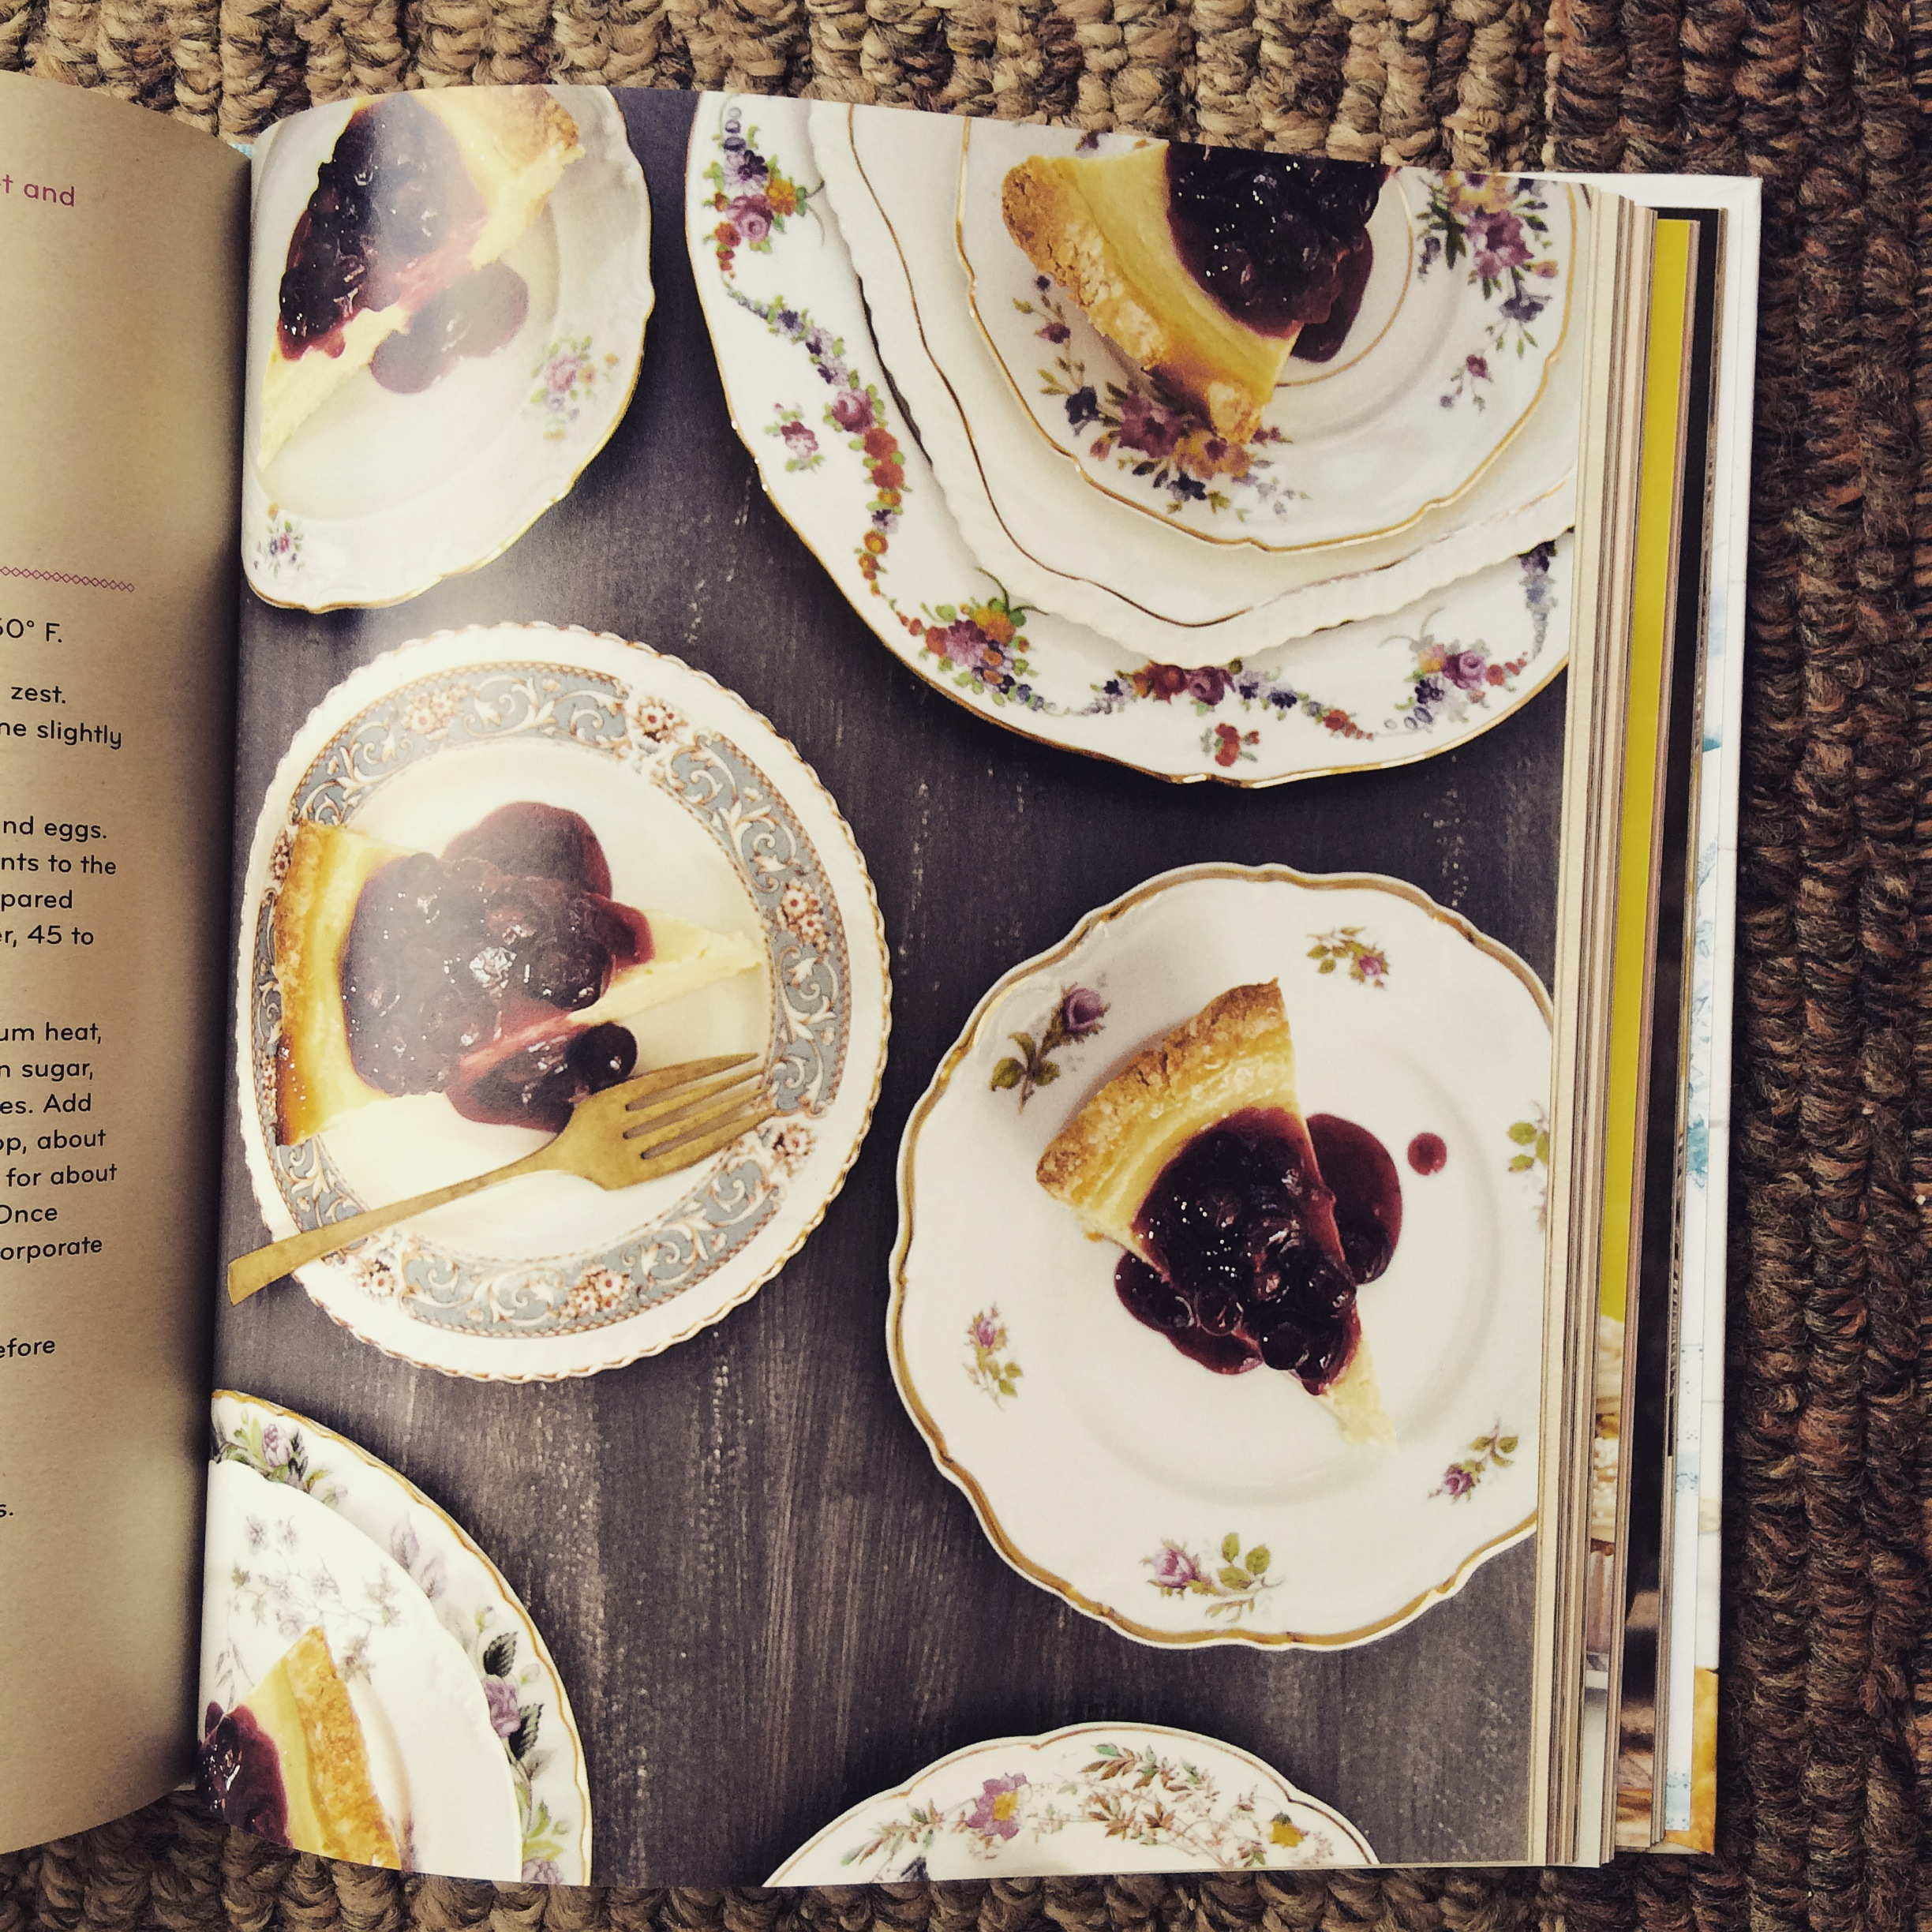 From the book, Homemade Decadence